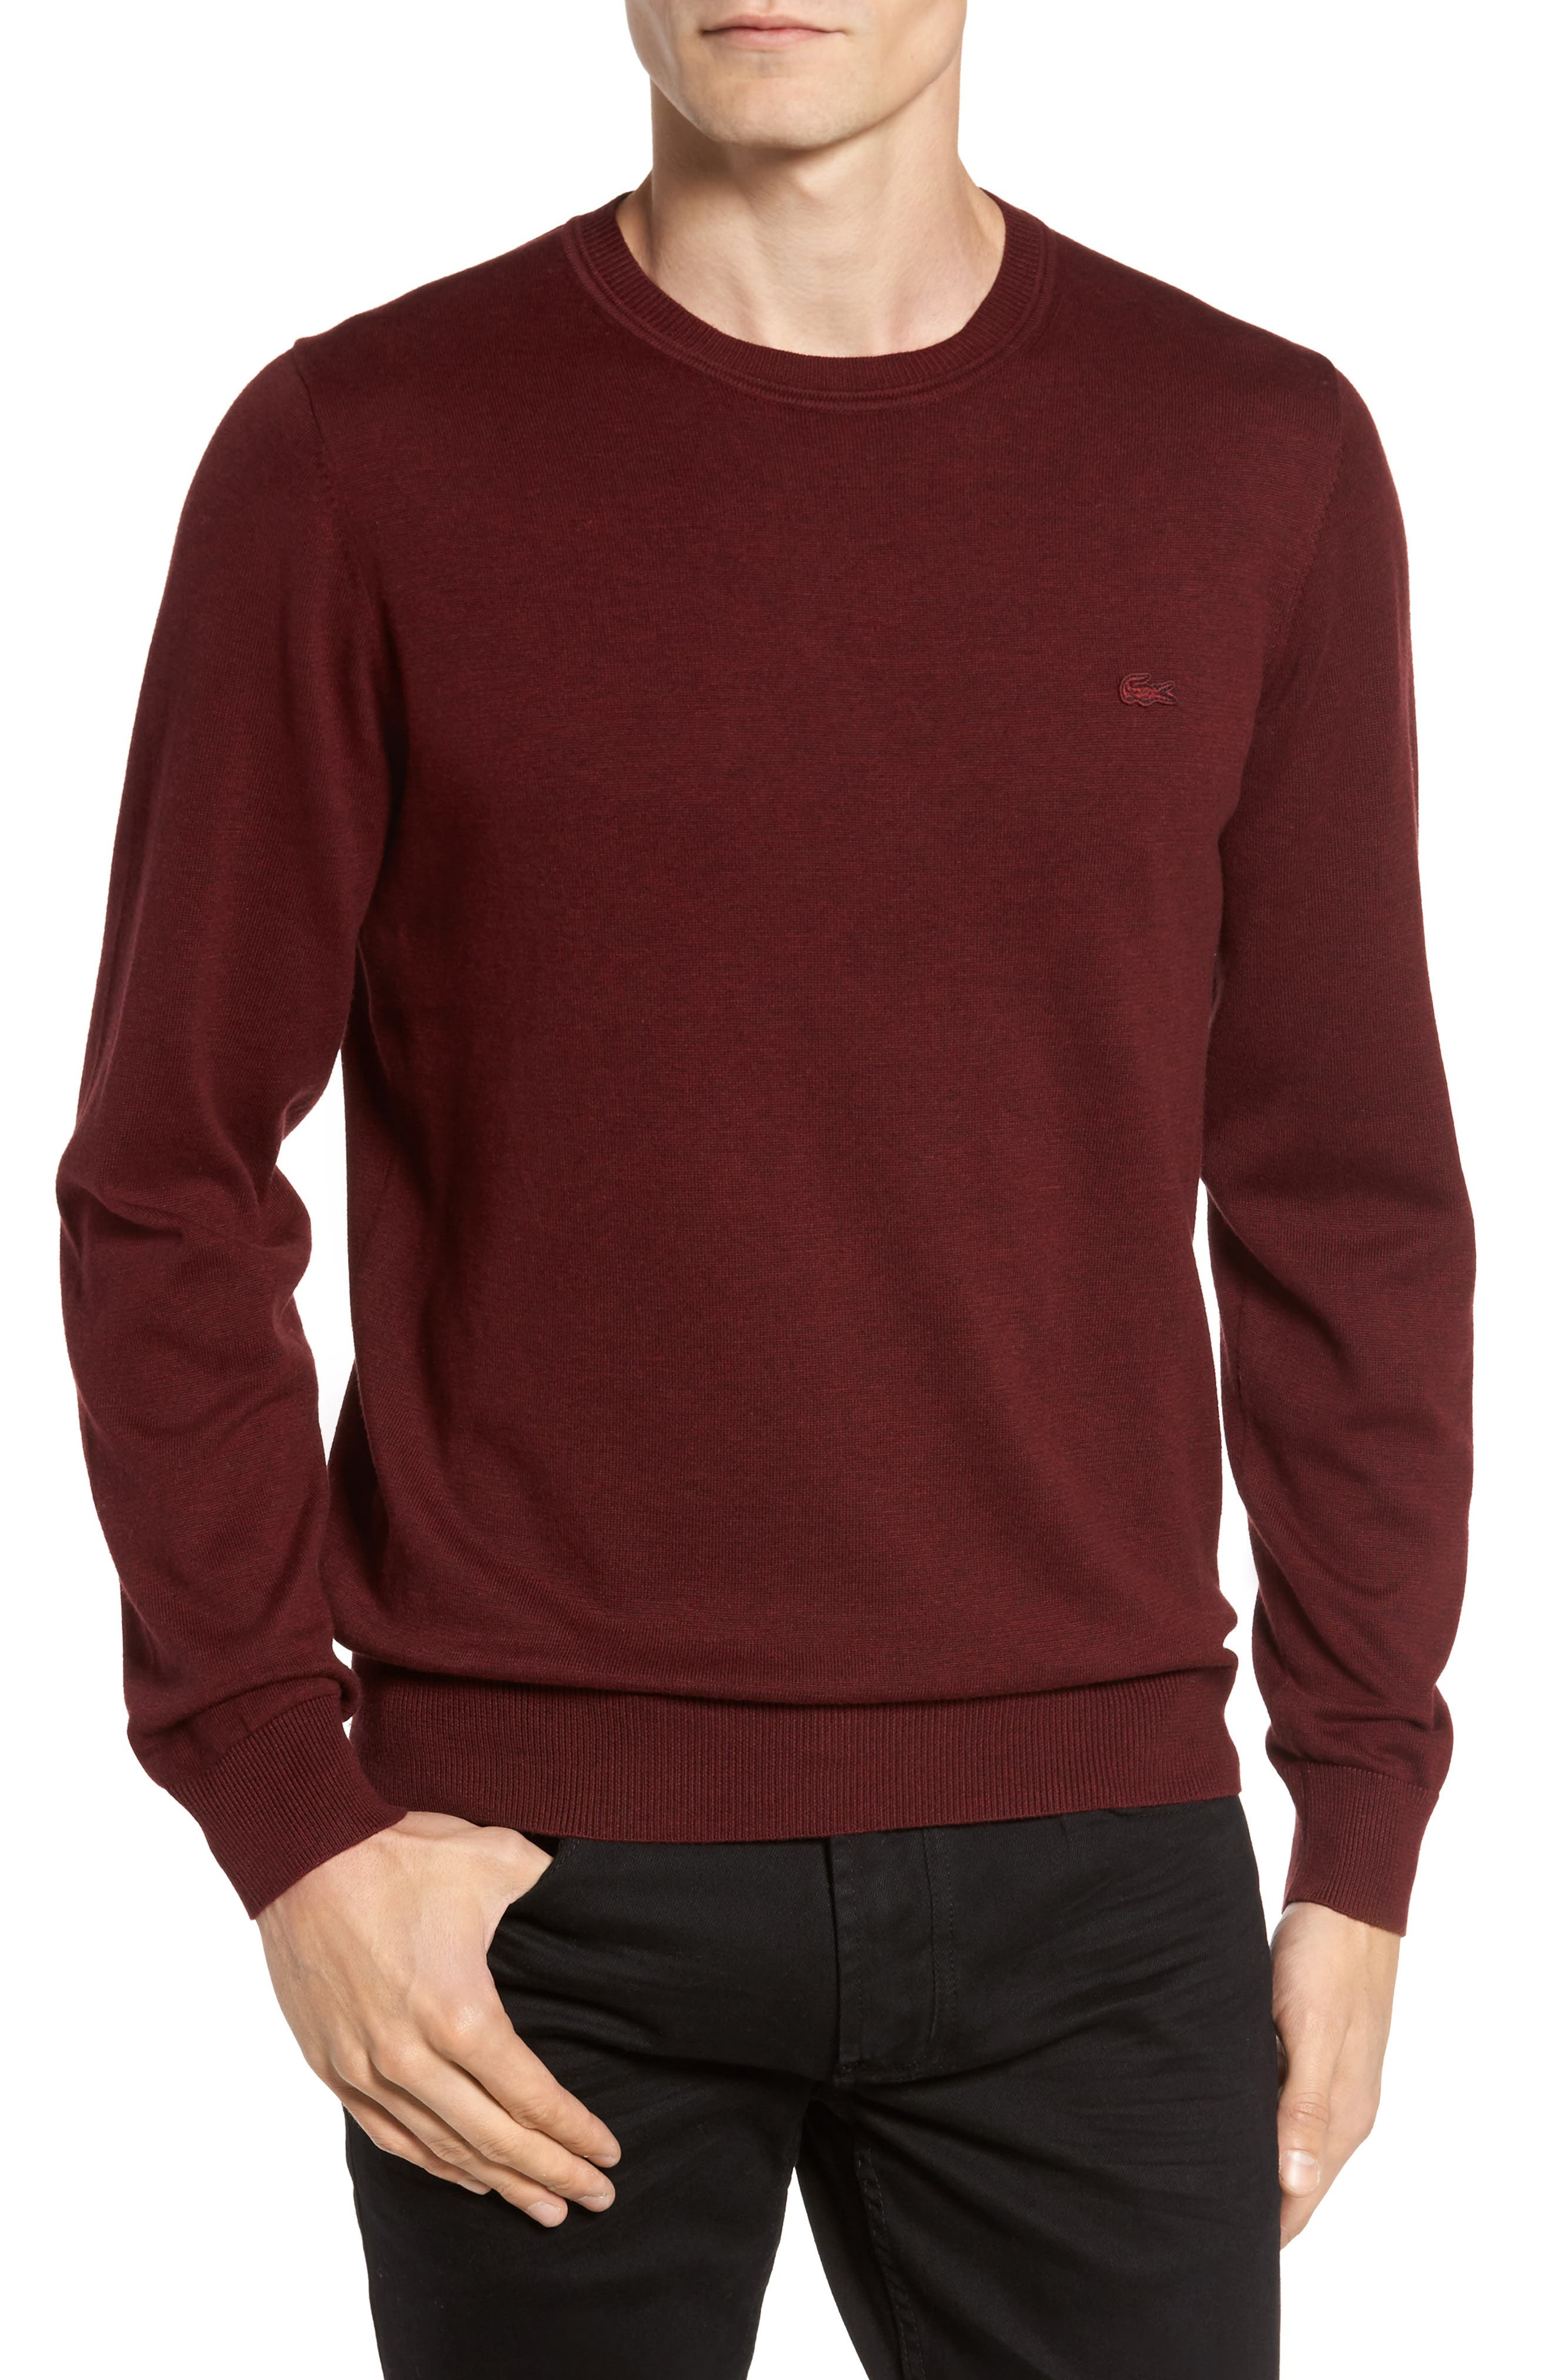 Alternate Image 1 Selected - Lacoste Jersey Knit Crewneck Sweater